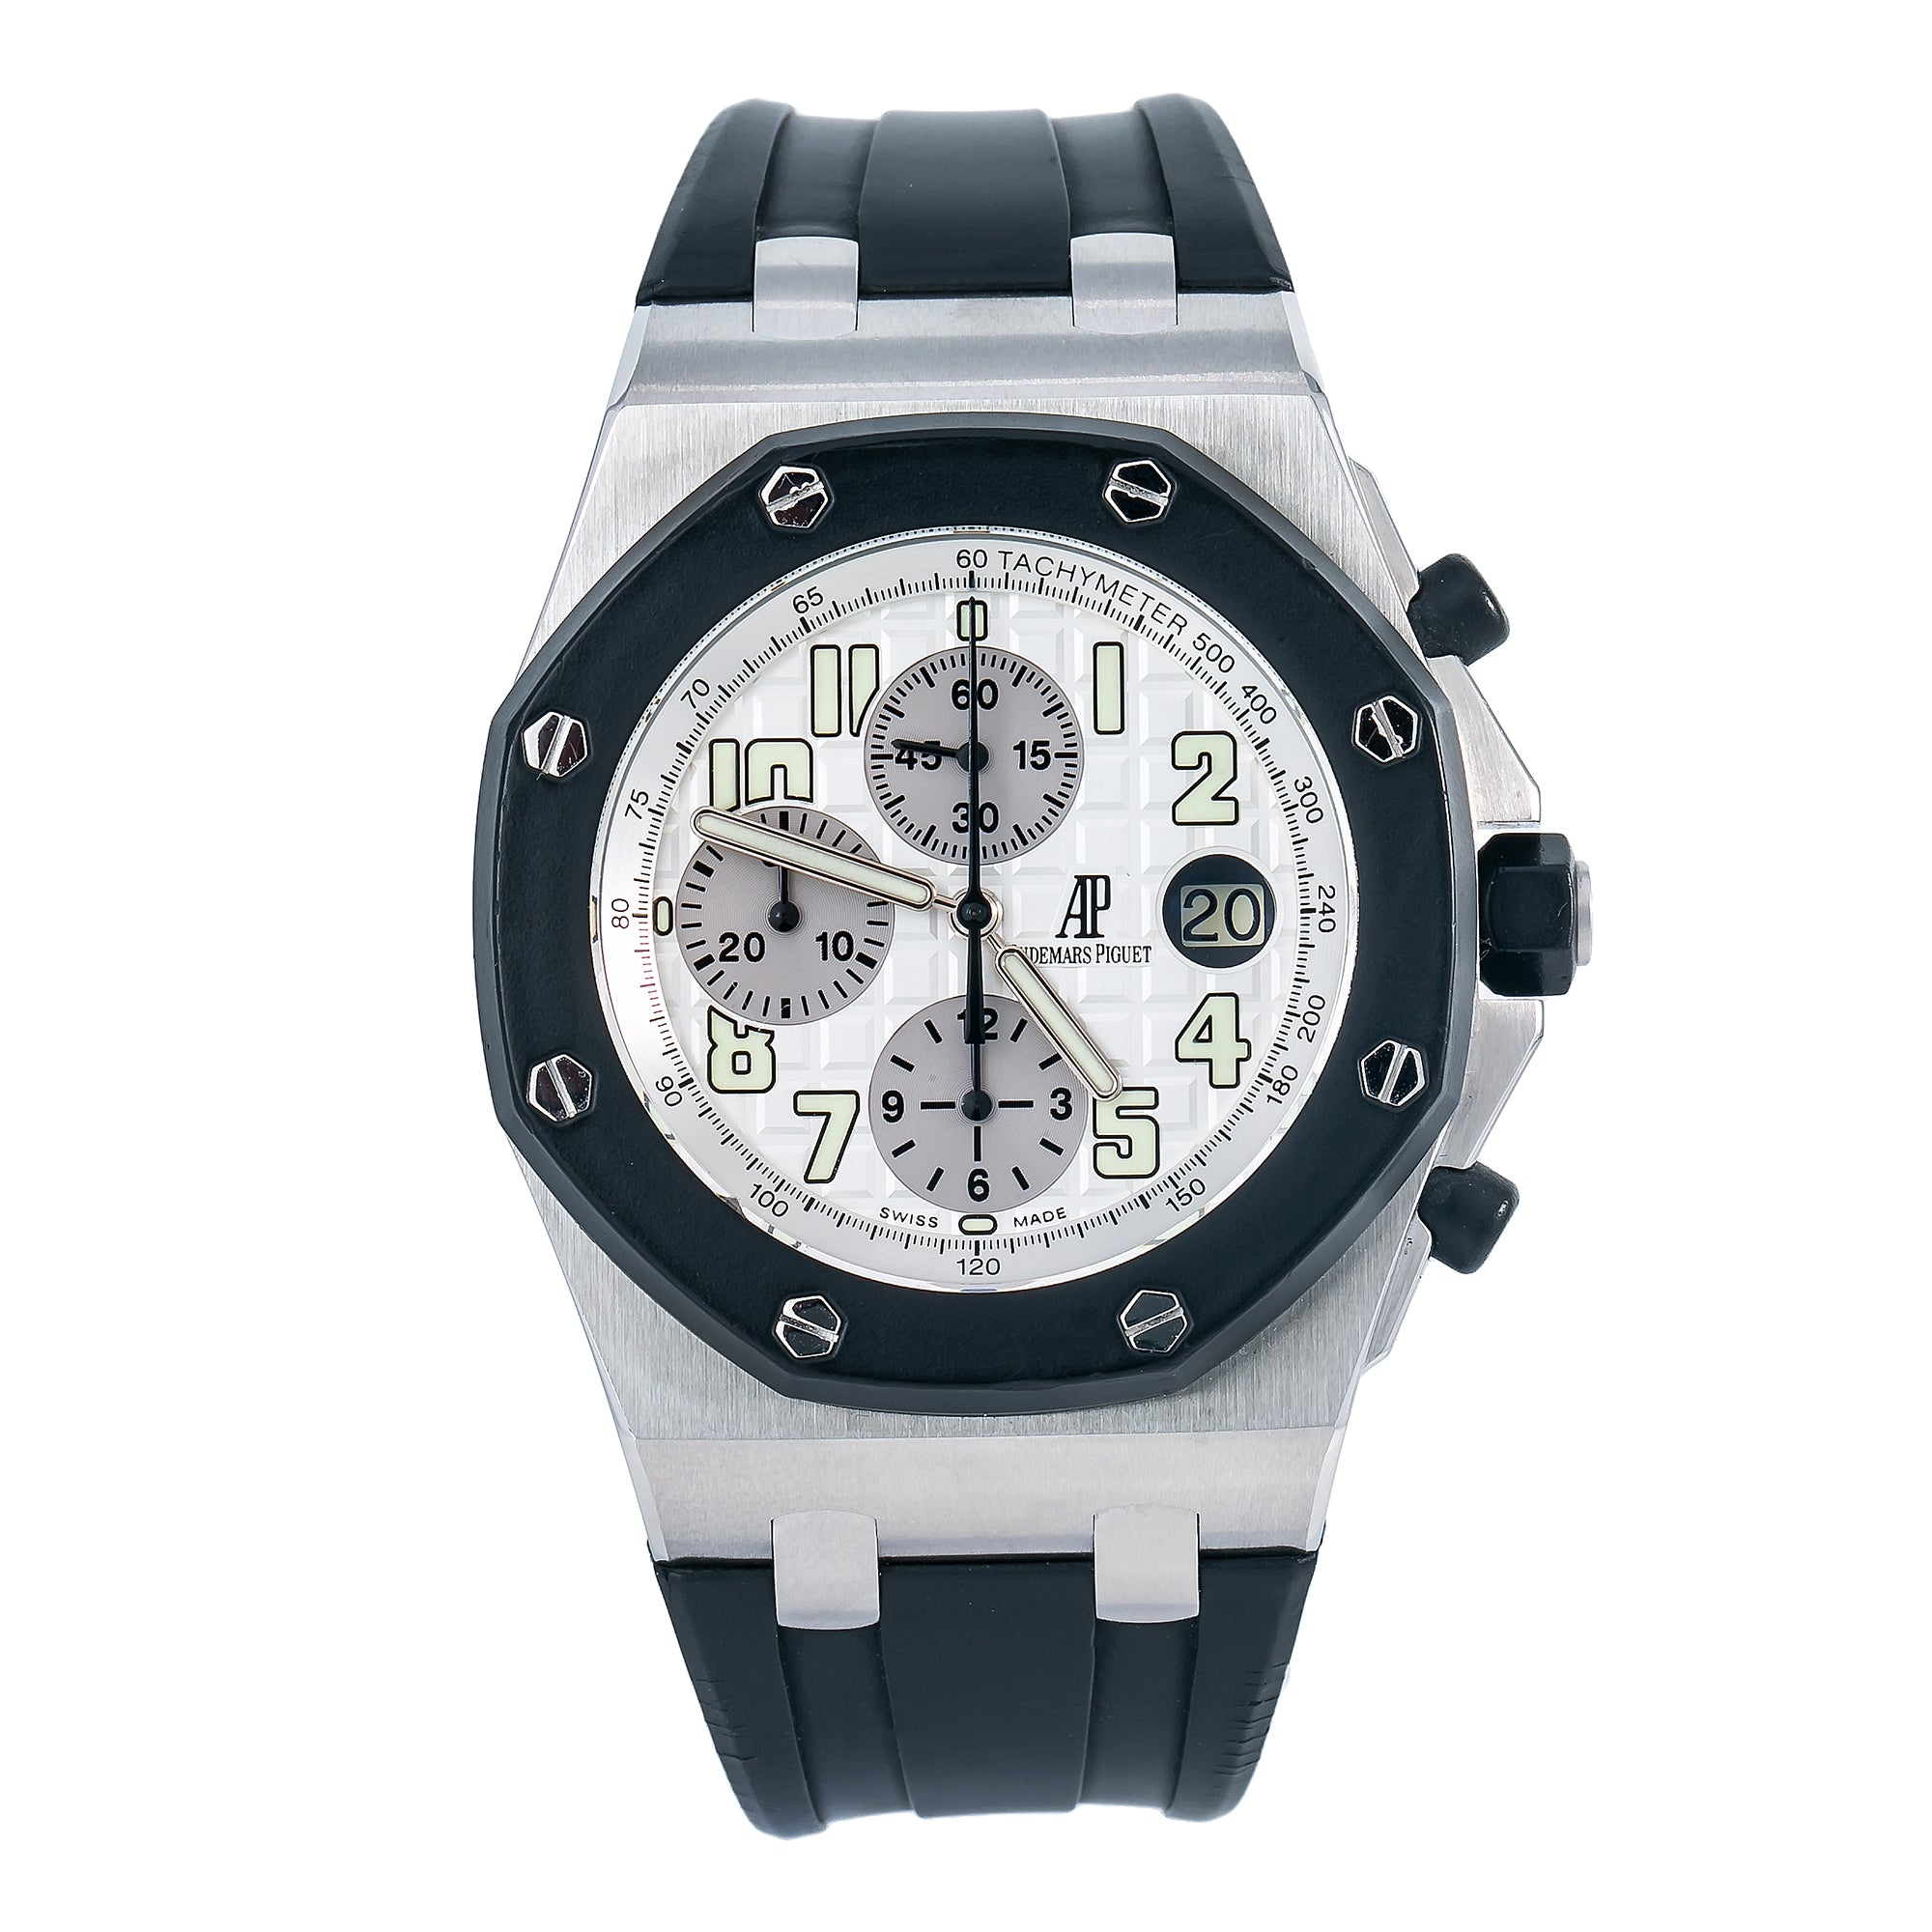 Audemars Piguet Royal Oak Offshore Chronograph 25940SK 42MM White Dial With Rubber Bracelet